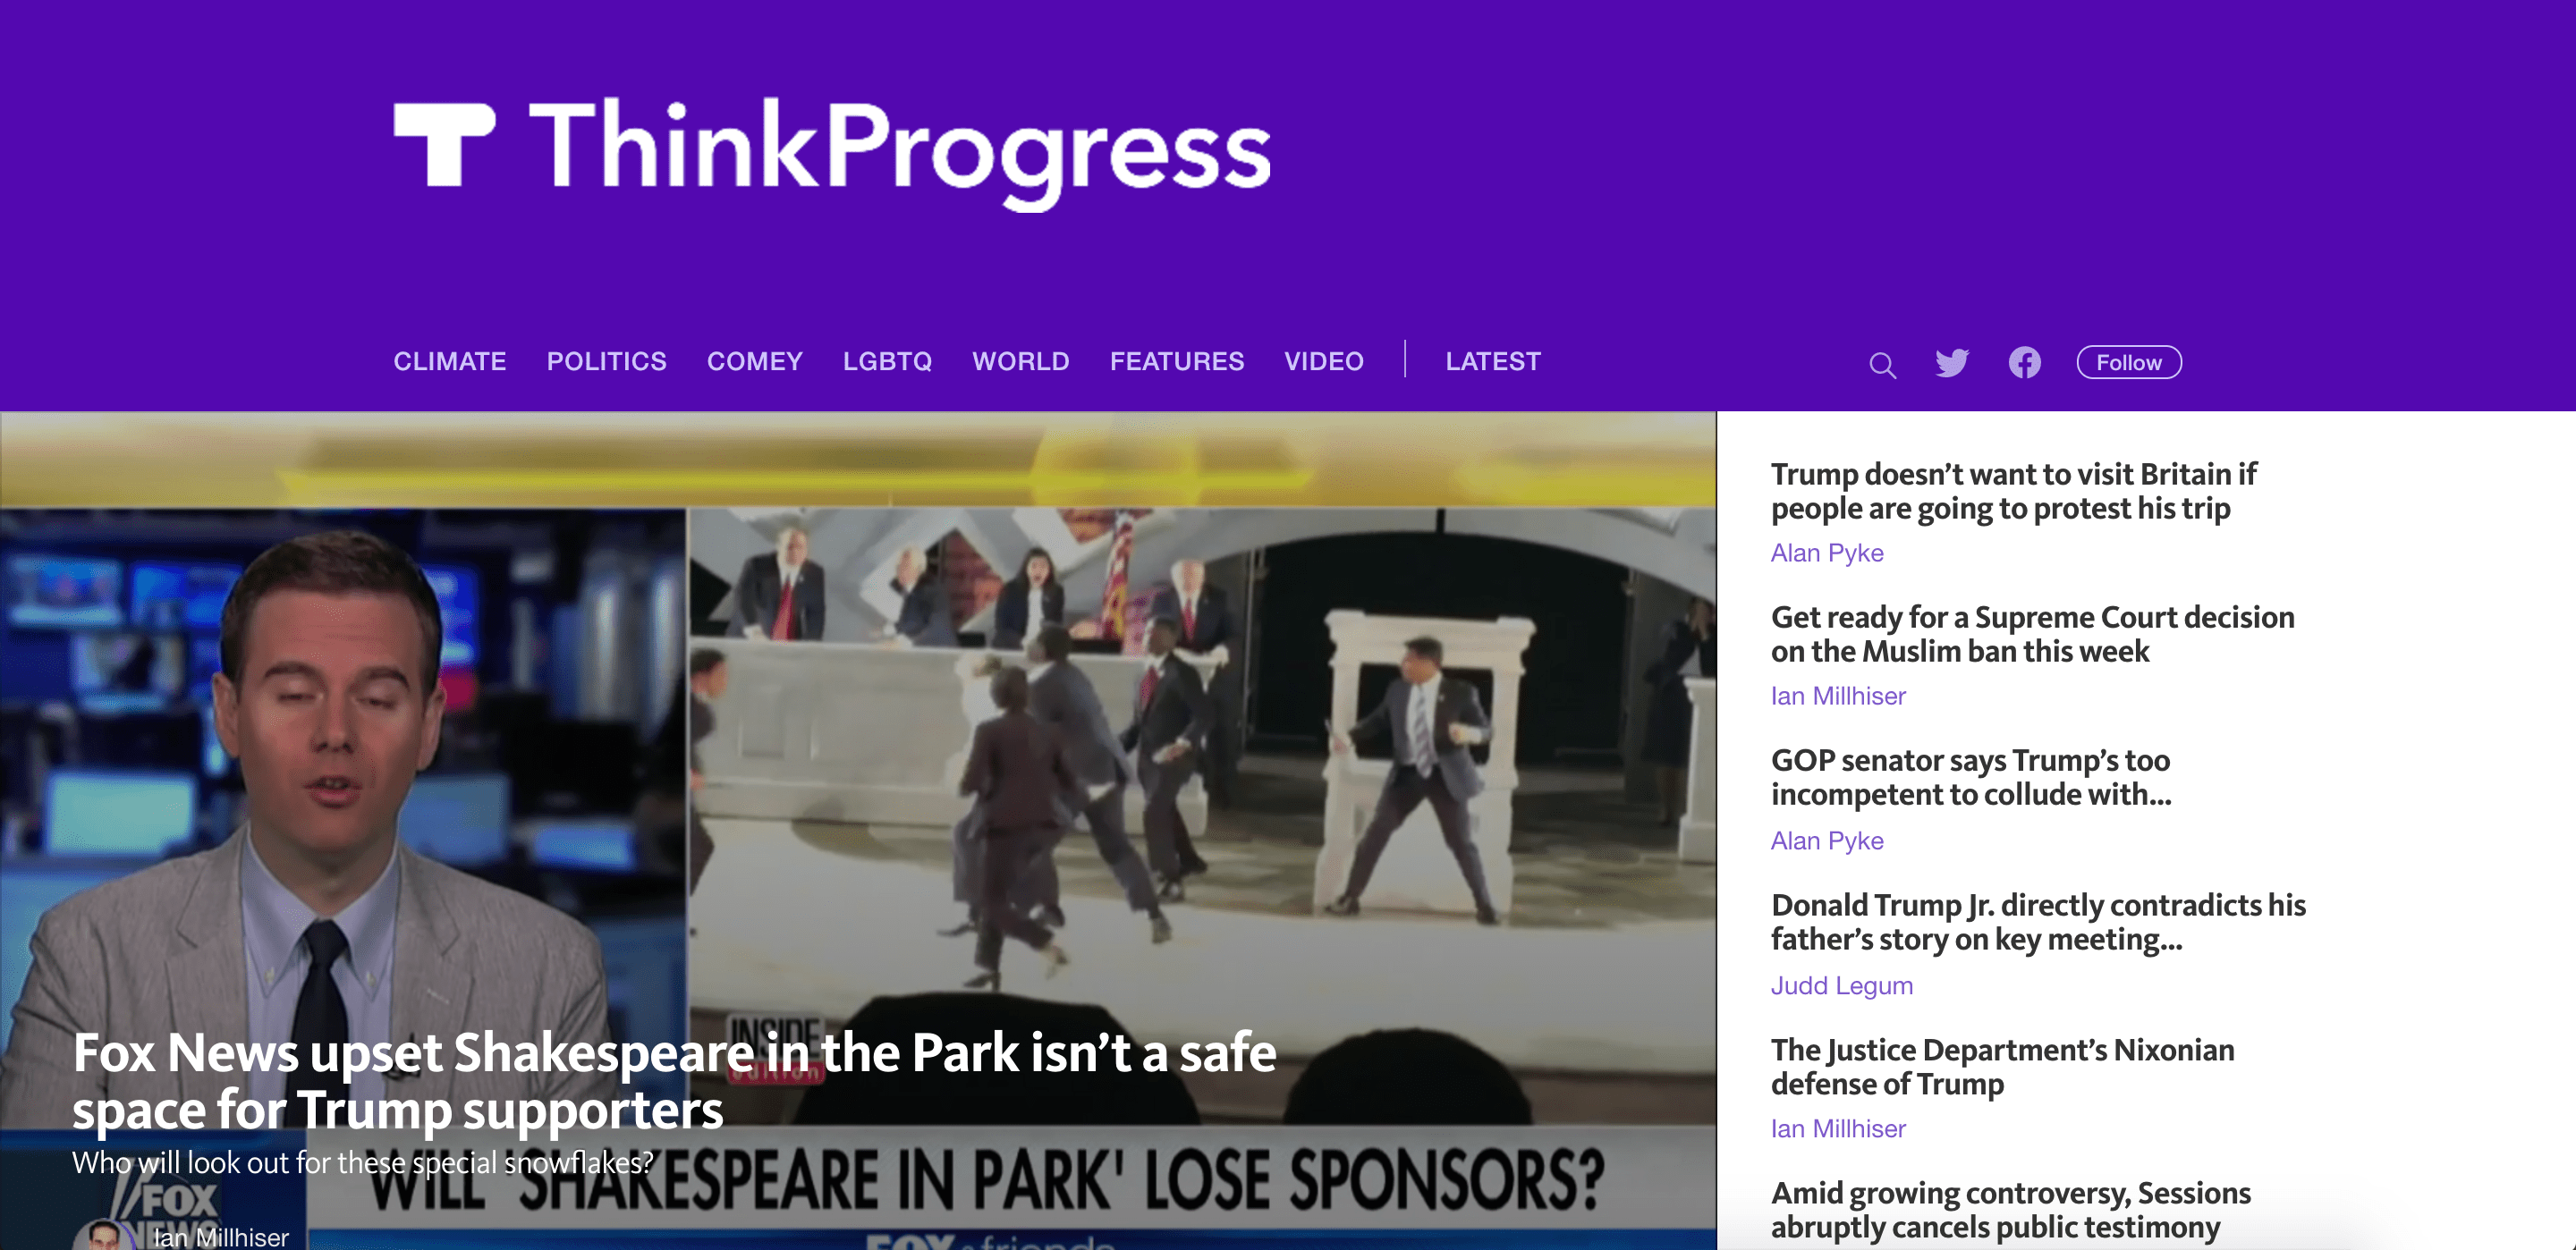 ThinkProgress